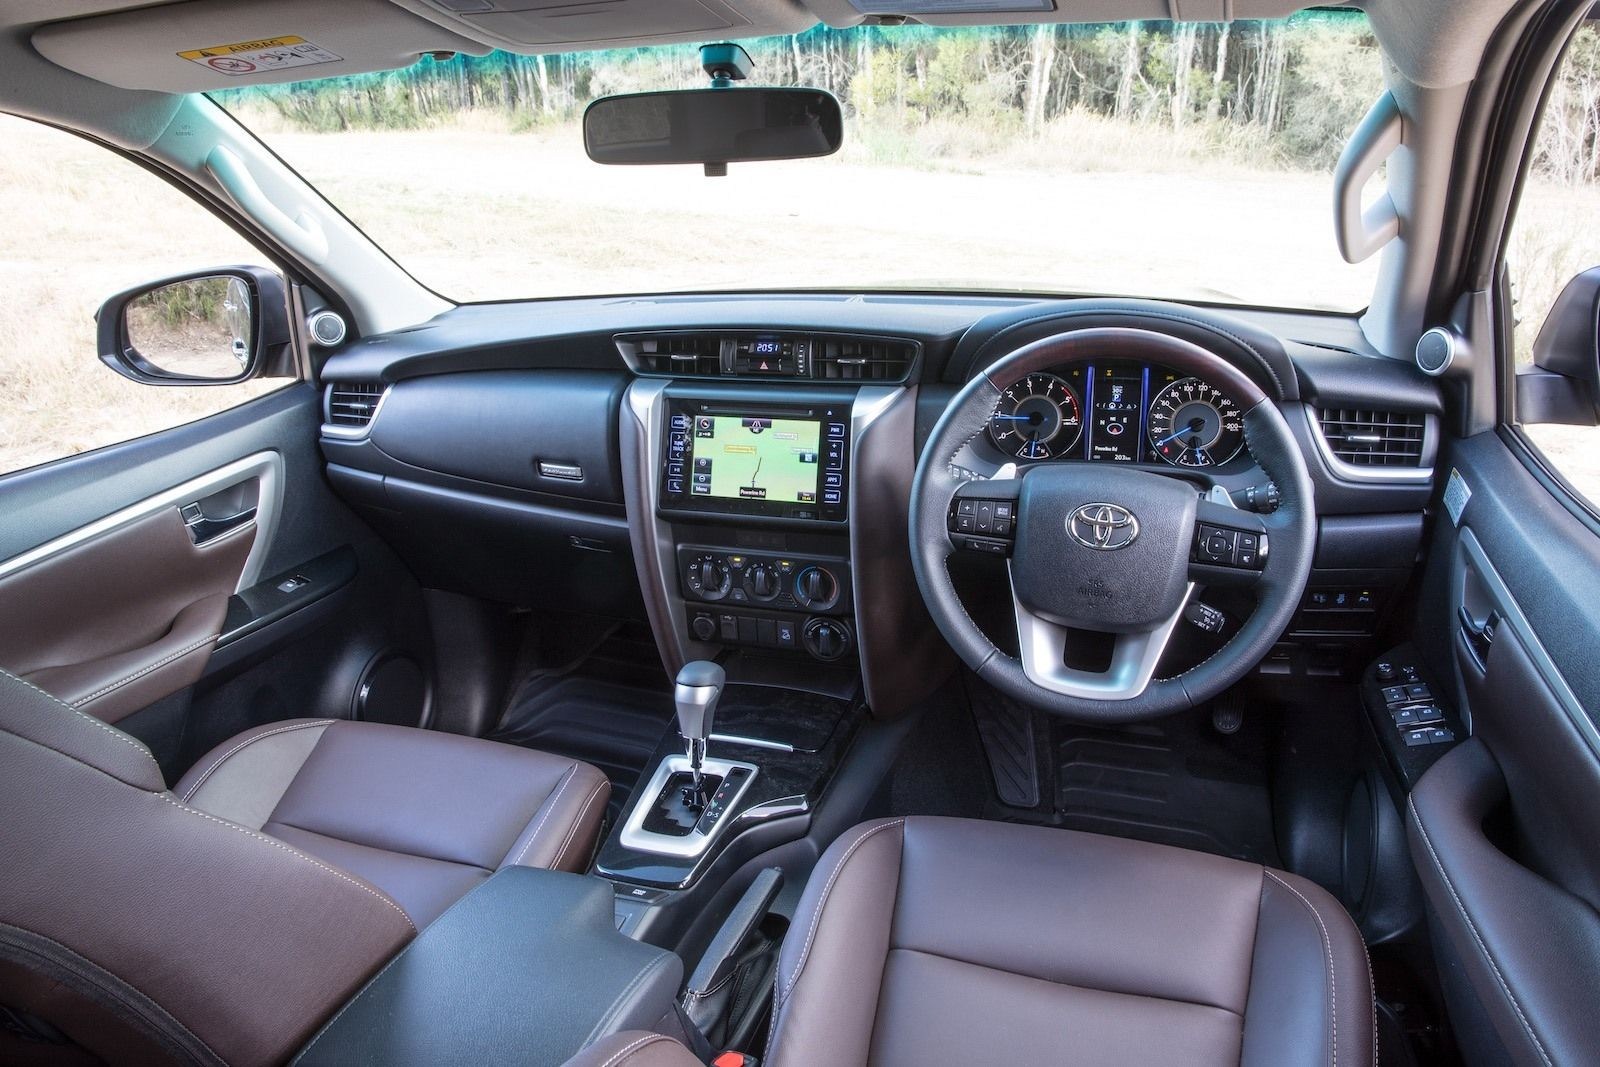 2018 Toyota Fortuner Interior Exterior And Review Toyota Interior Exterior